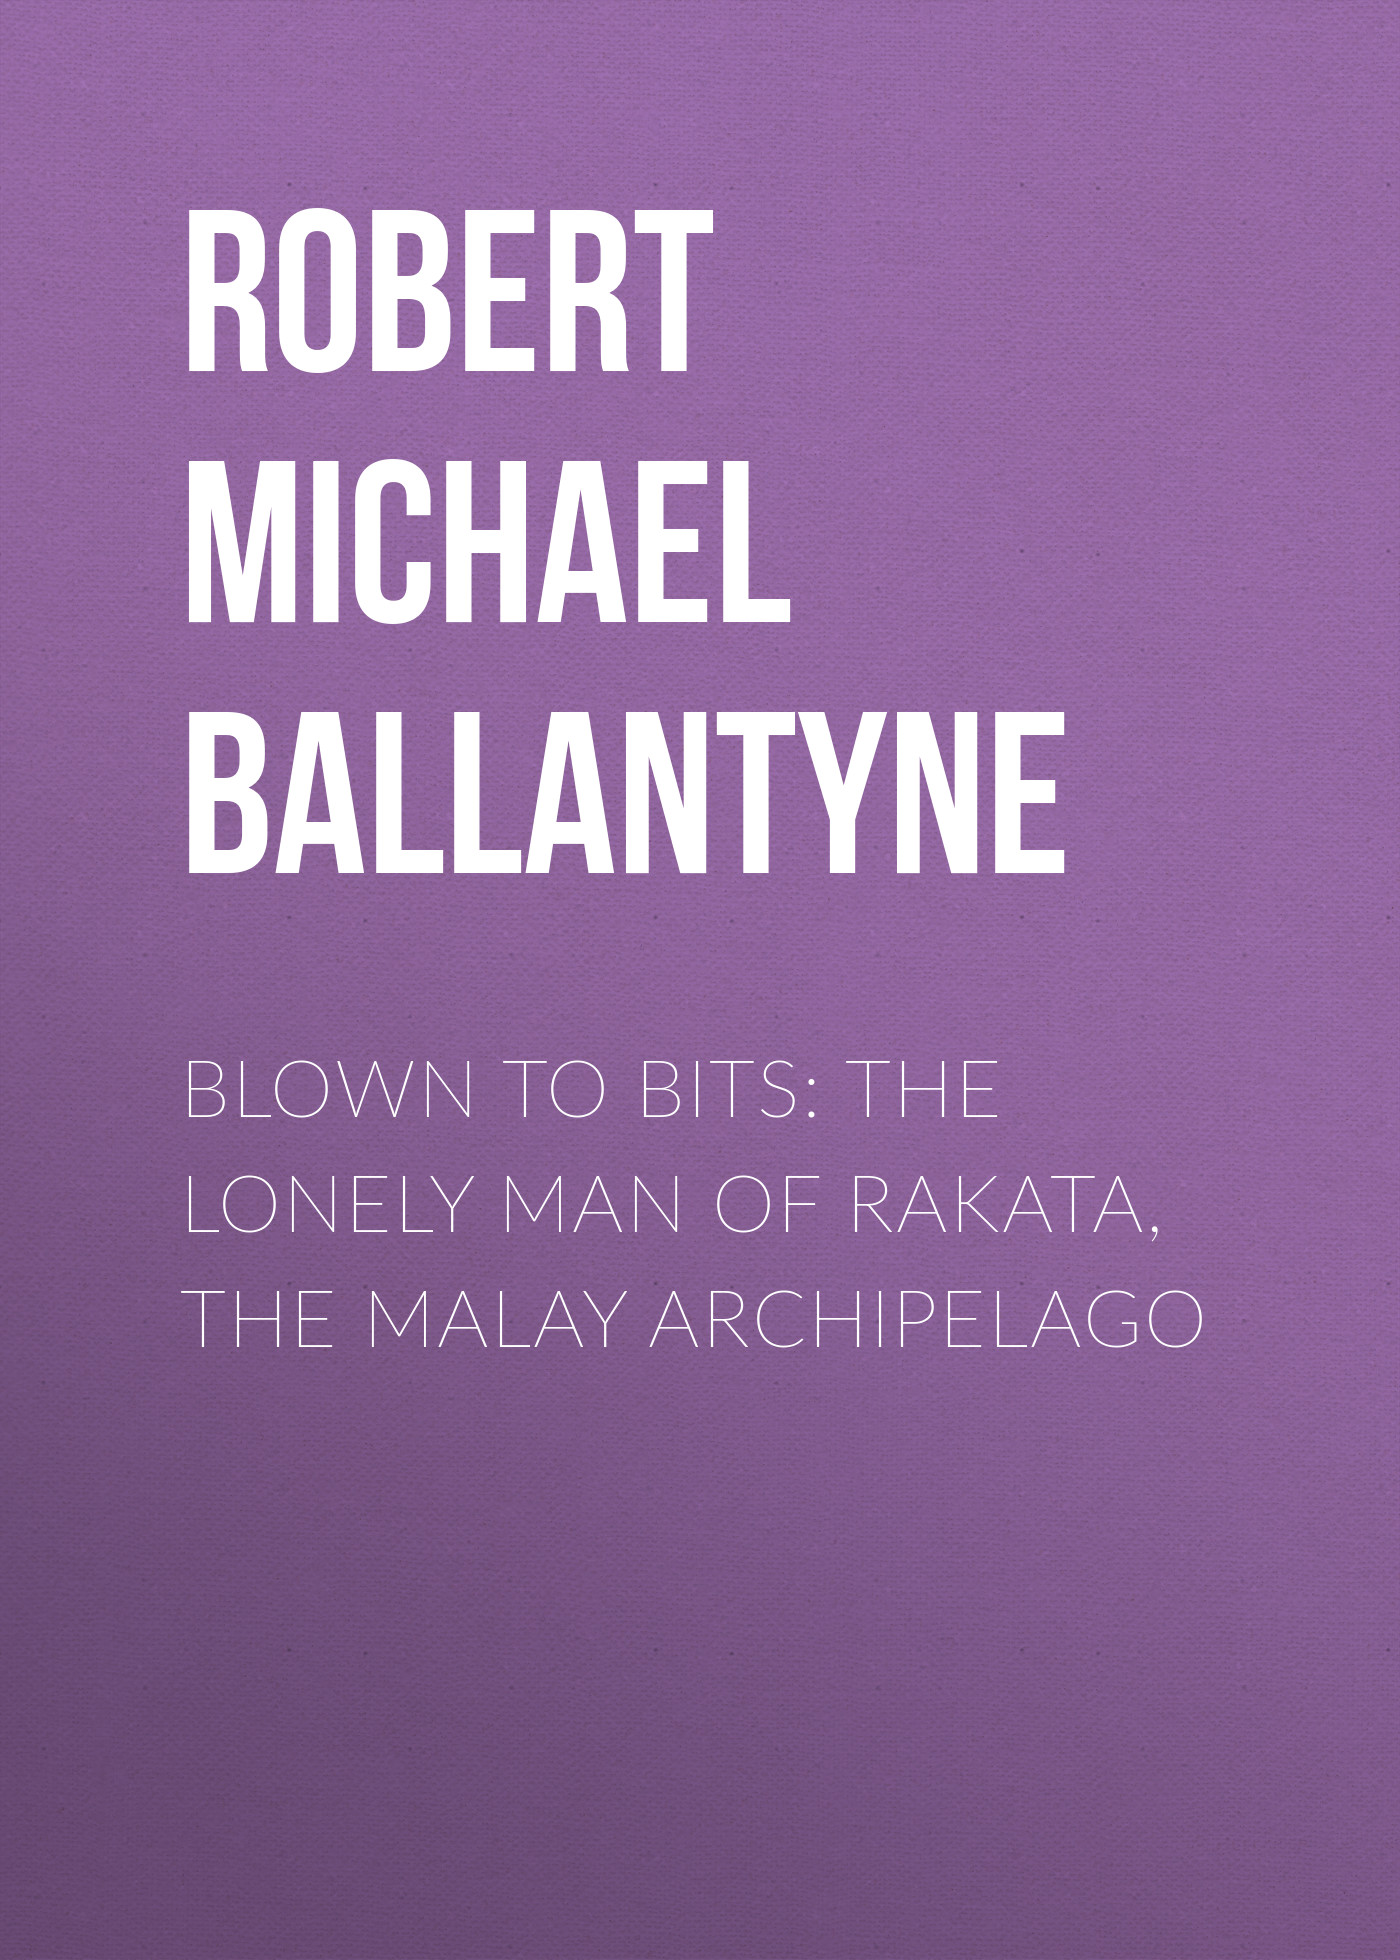 Robert Michael Ballantyne Blown to Bits: The Lonely Man of Rakata, the Malay Archipelago modernization and the malay matrimonial foodways